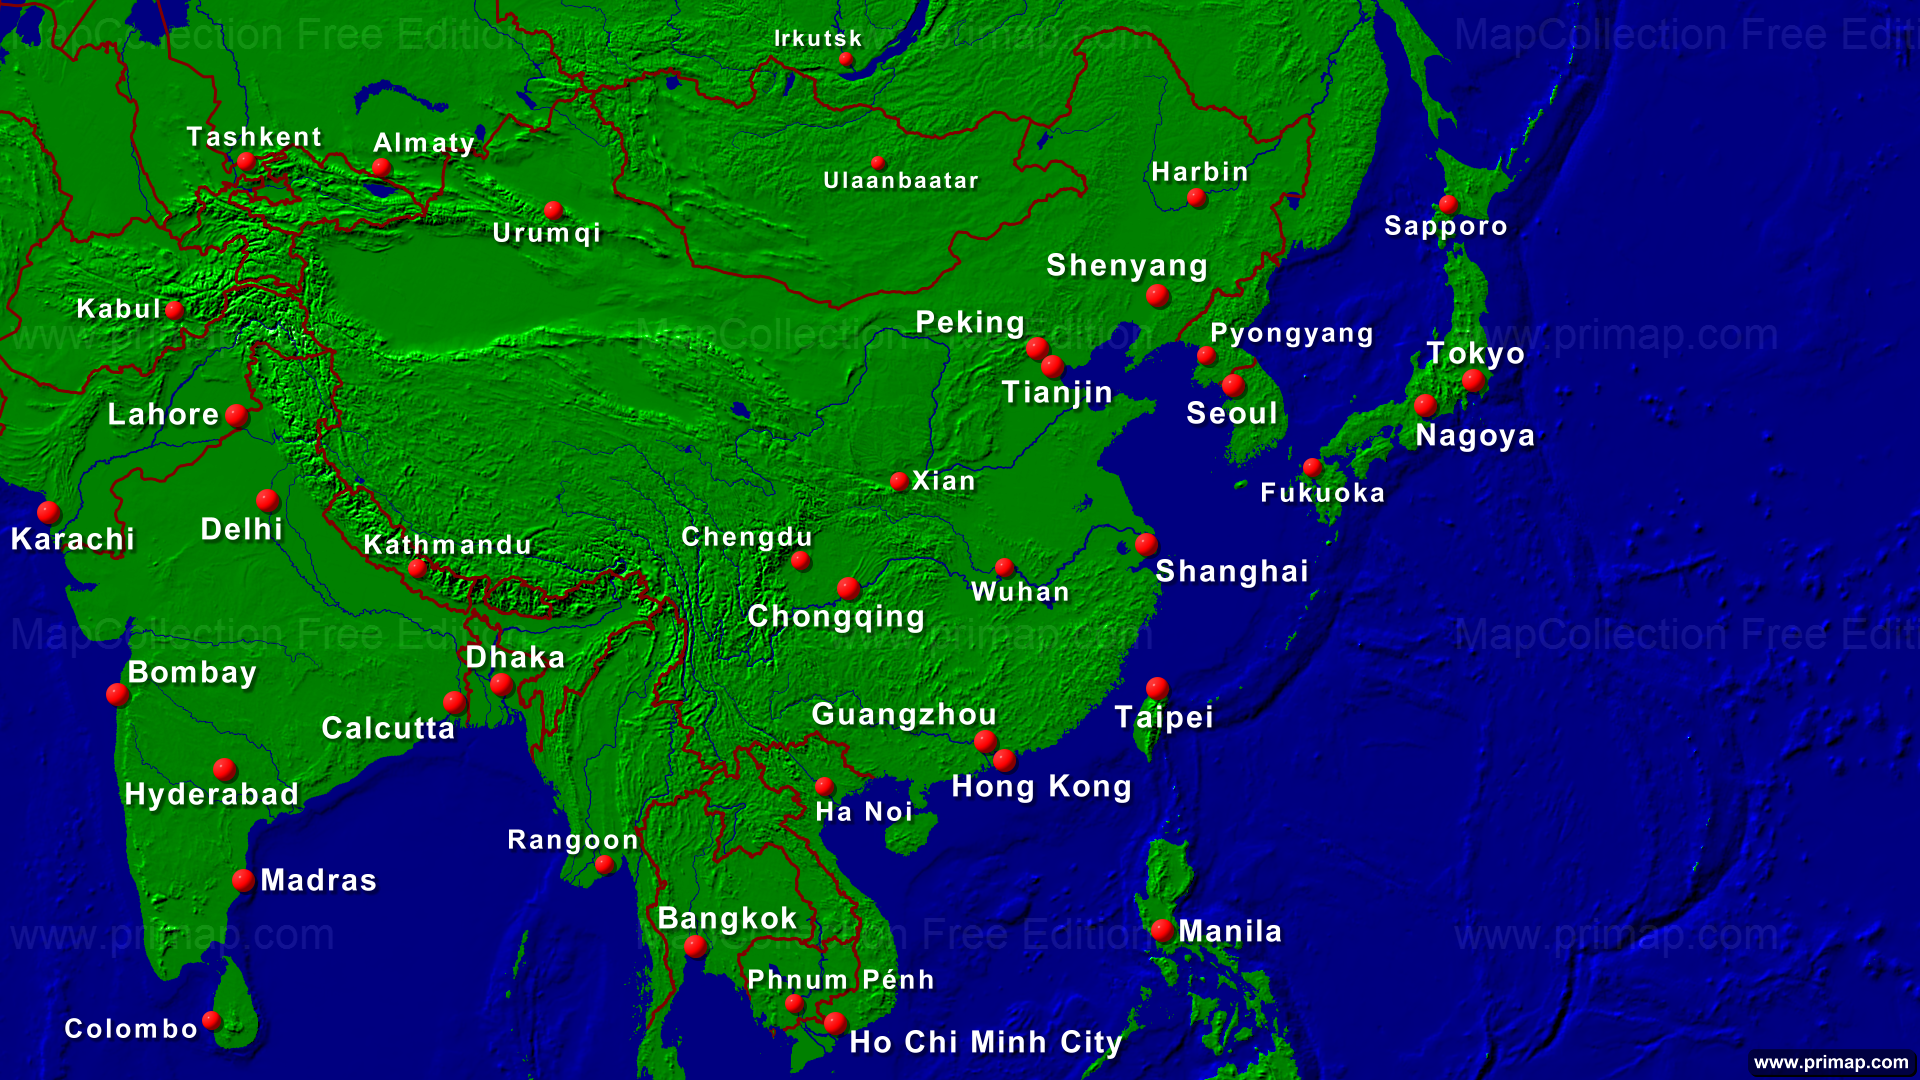 Map Of Asia Full Hd.Primap Continental Maps